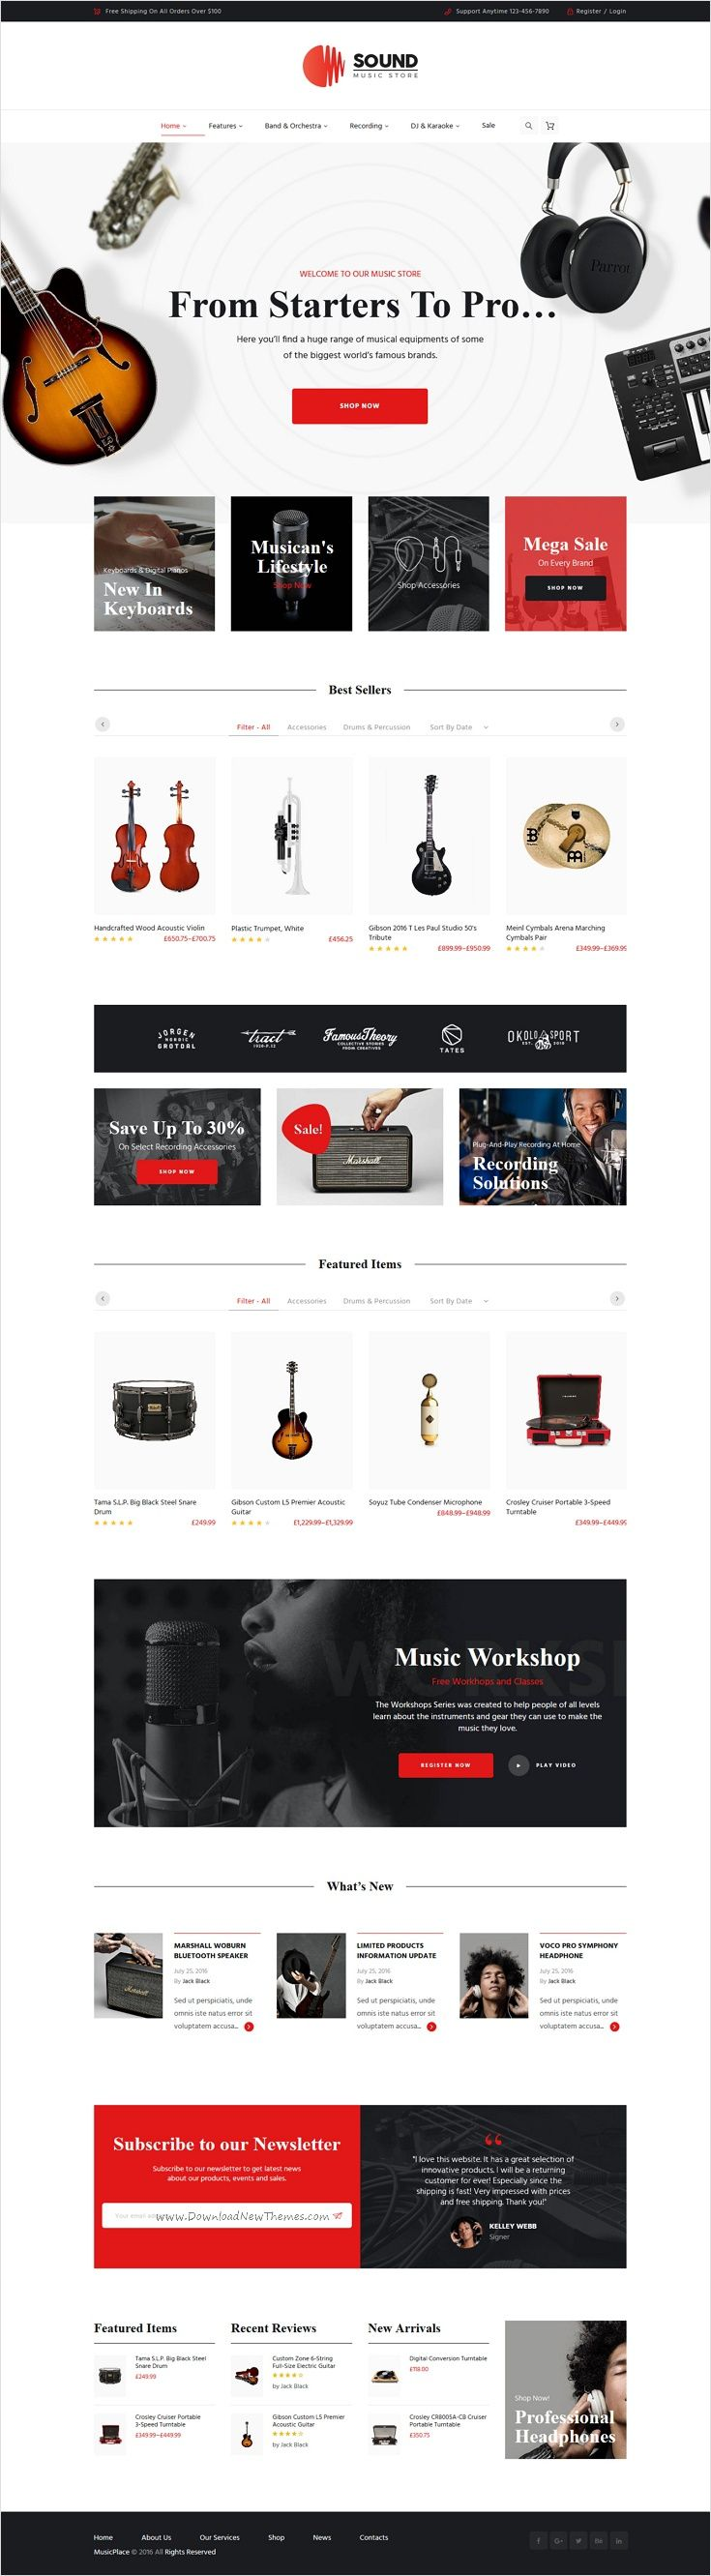 Sound is wonderful 3 in 1 responsive #WP #theme for #music #instruments online store website download now➩ https://themeforest.net/item/sound-musical-instruments-online-store/17537788?ref=Datasata